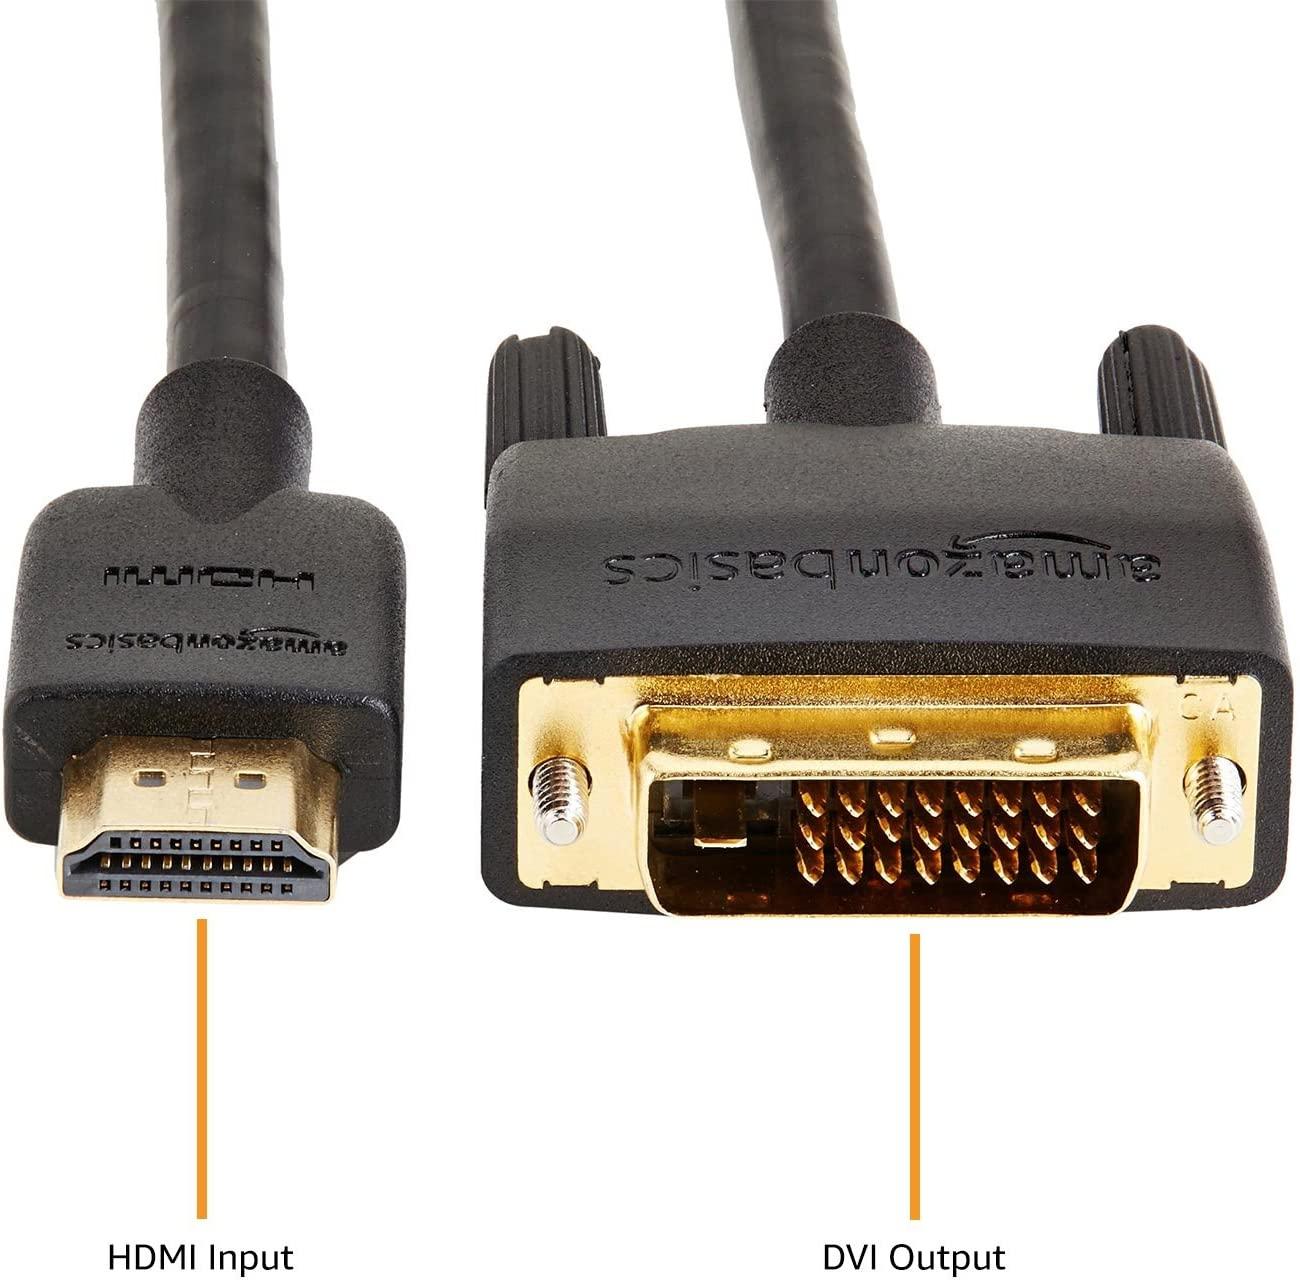 AmazonBasics HDMI DVI Adapter Cable Latest Standard Not for connecting SCART VGA ports